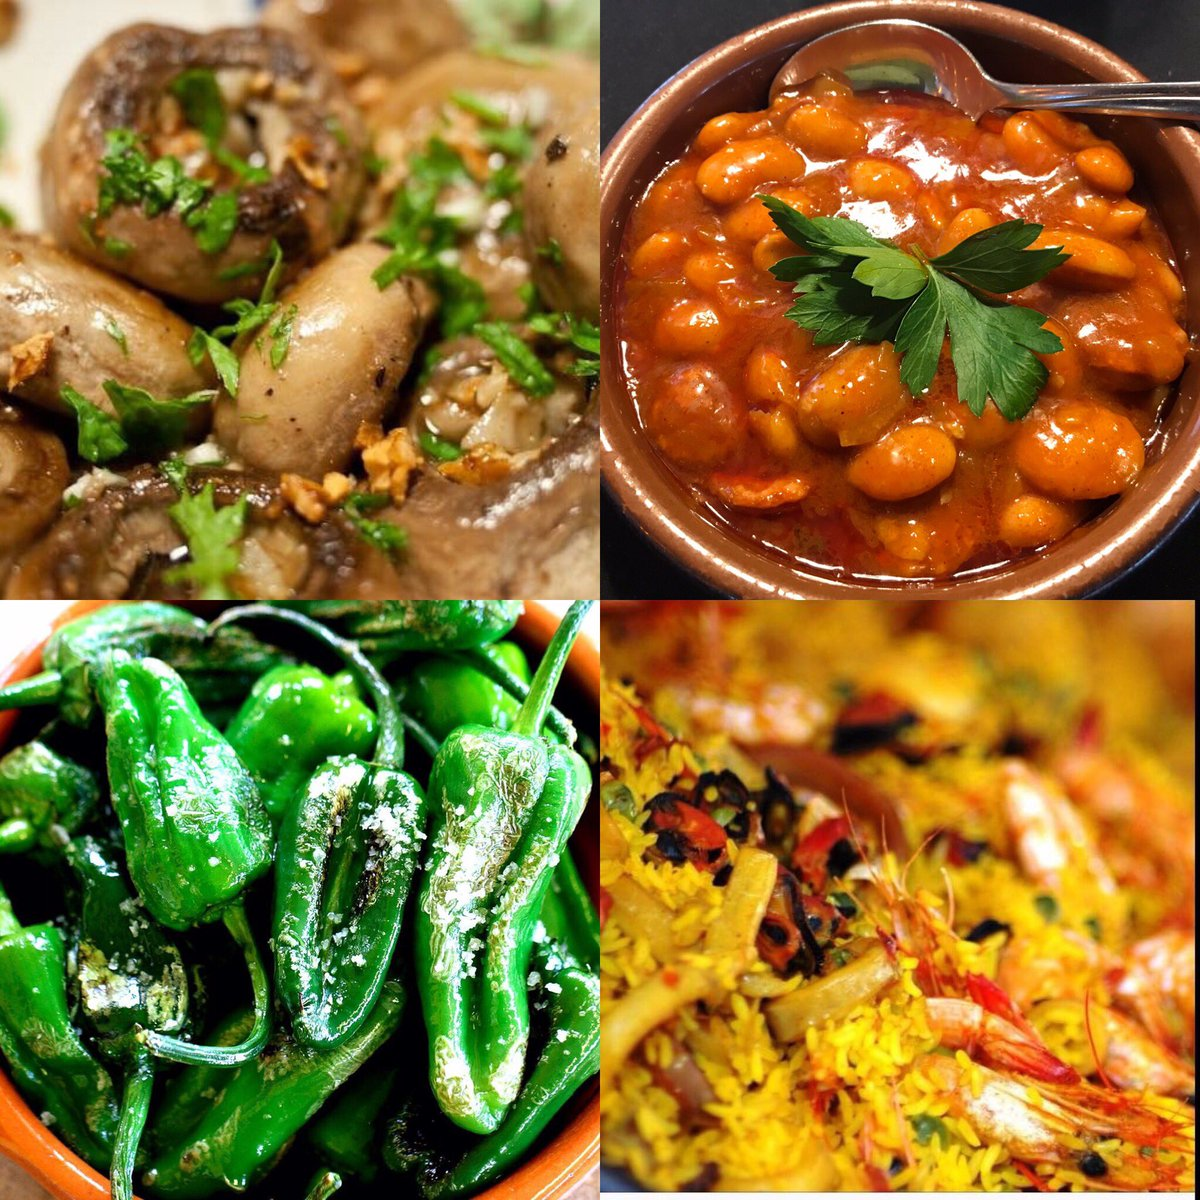 test Twitter Media - #wednesdaymotivation Cheer yourself up on this dull day! All of these delicious dishes are part of our lunchtime meal deal. 2 for £9 or 3 for £12 includes bread & alioli. Available Tues/Weds until 3pm & Thurs/Fri until 5pm. #tapas #oldhighstreetfolkestone #spanishfood #lunchdeal https://t.co/3EIRO9yAwN